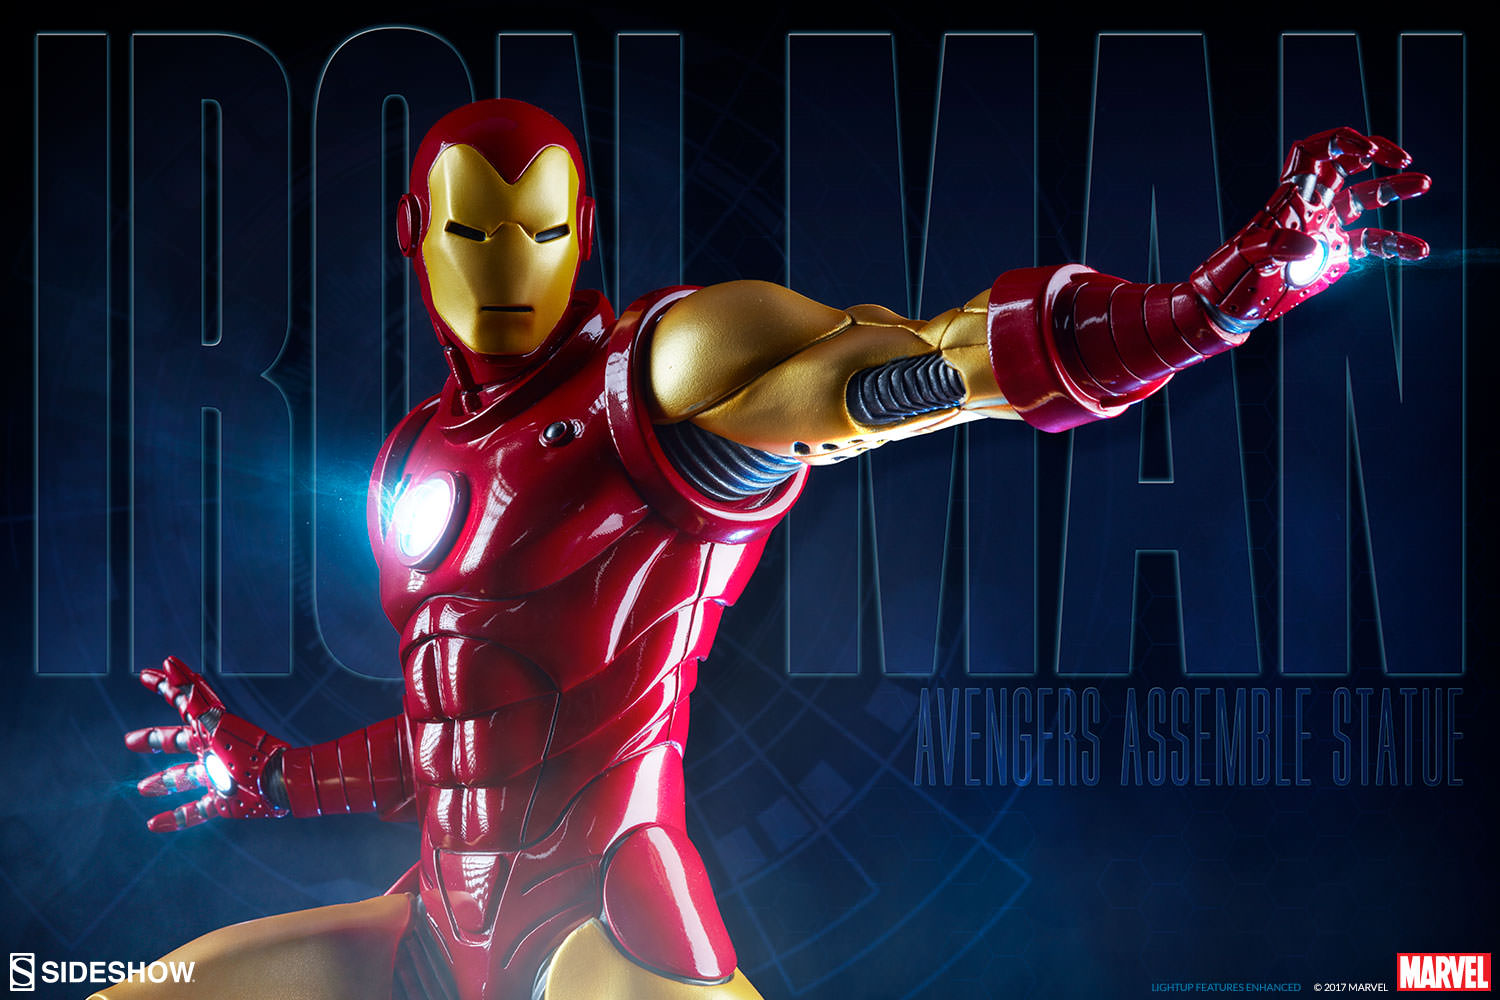 osw.zone Assembling a Production Gallery Update for the Iron Man Statue